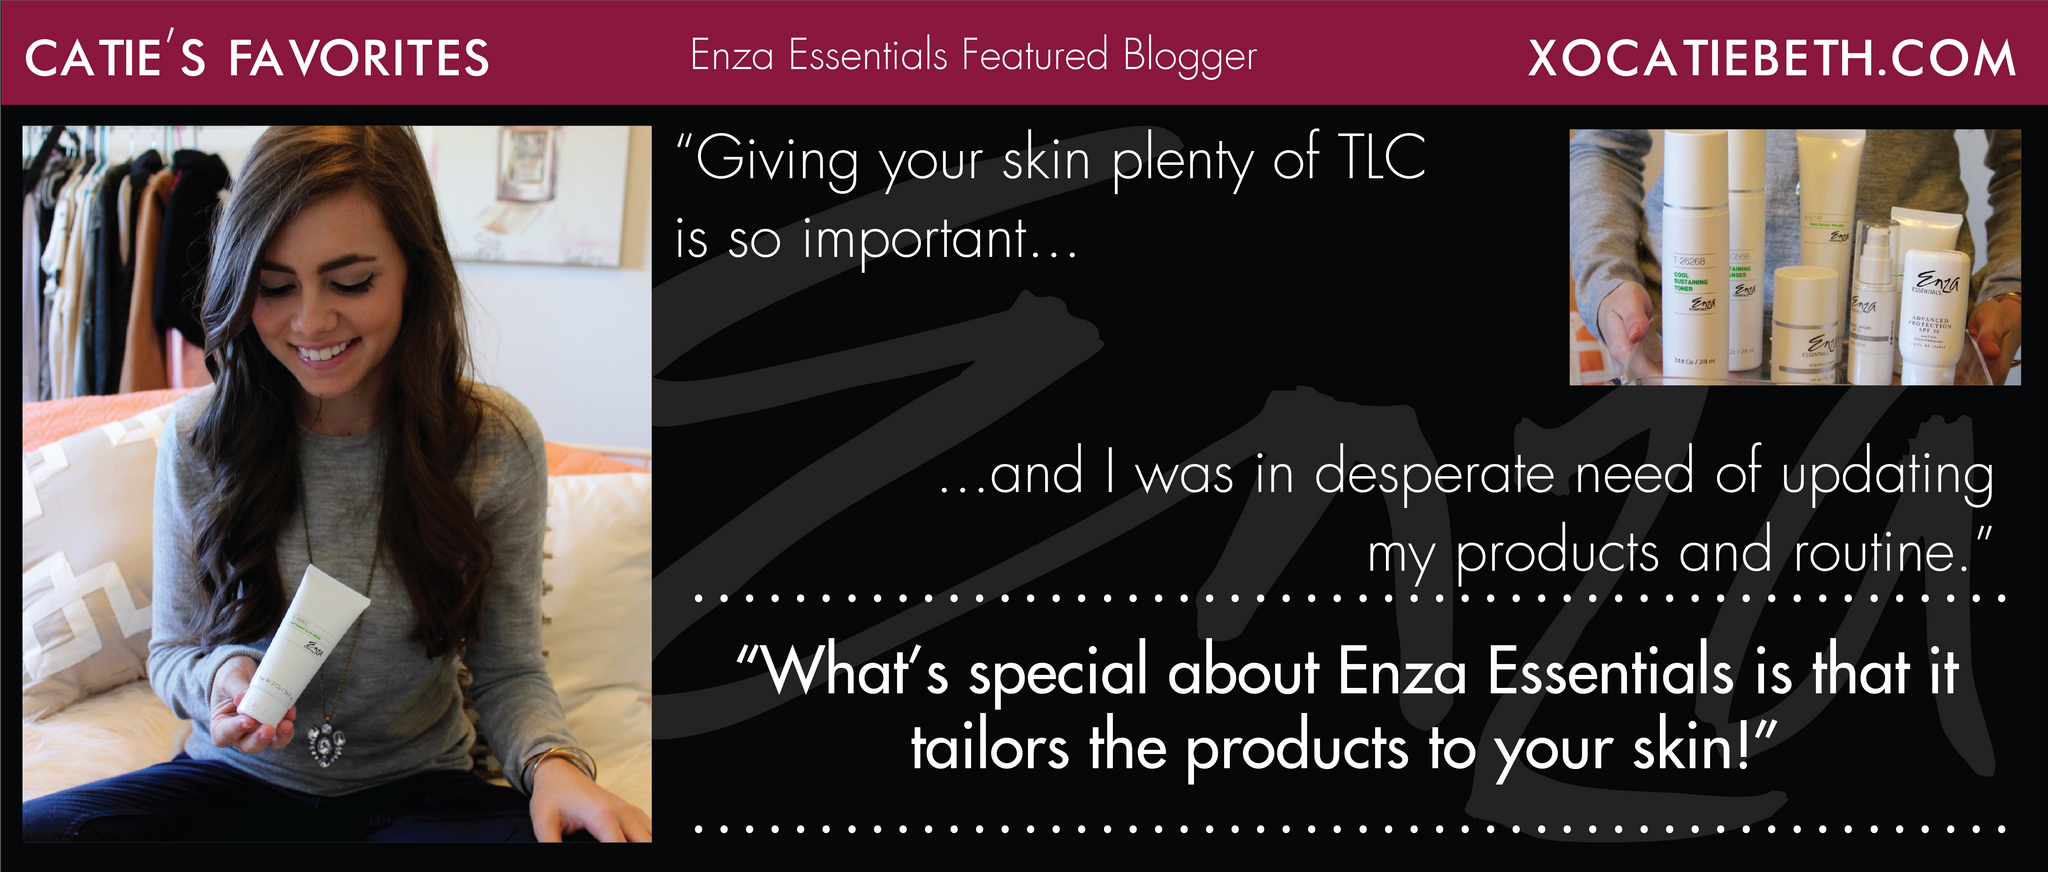 Xo Catie Beth Enza Essentials Featured Blogger Review